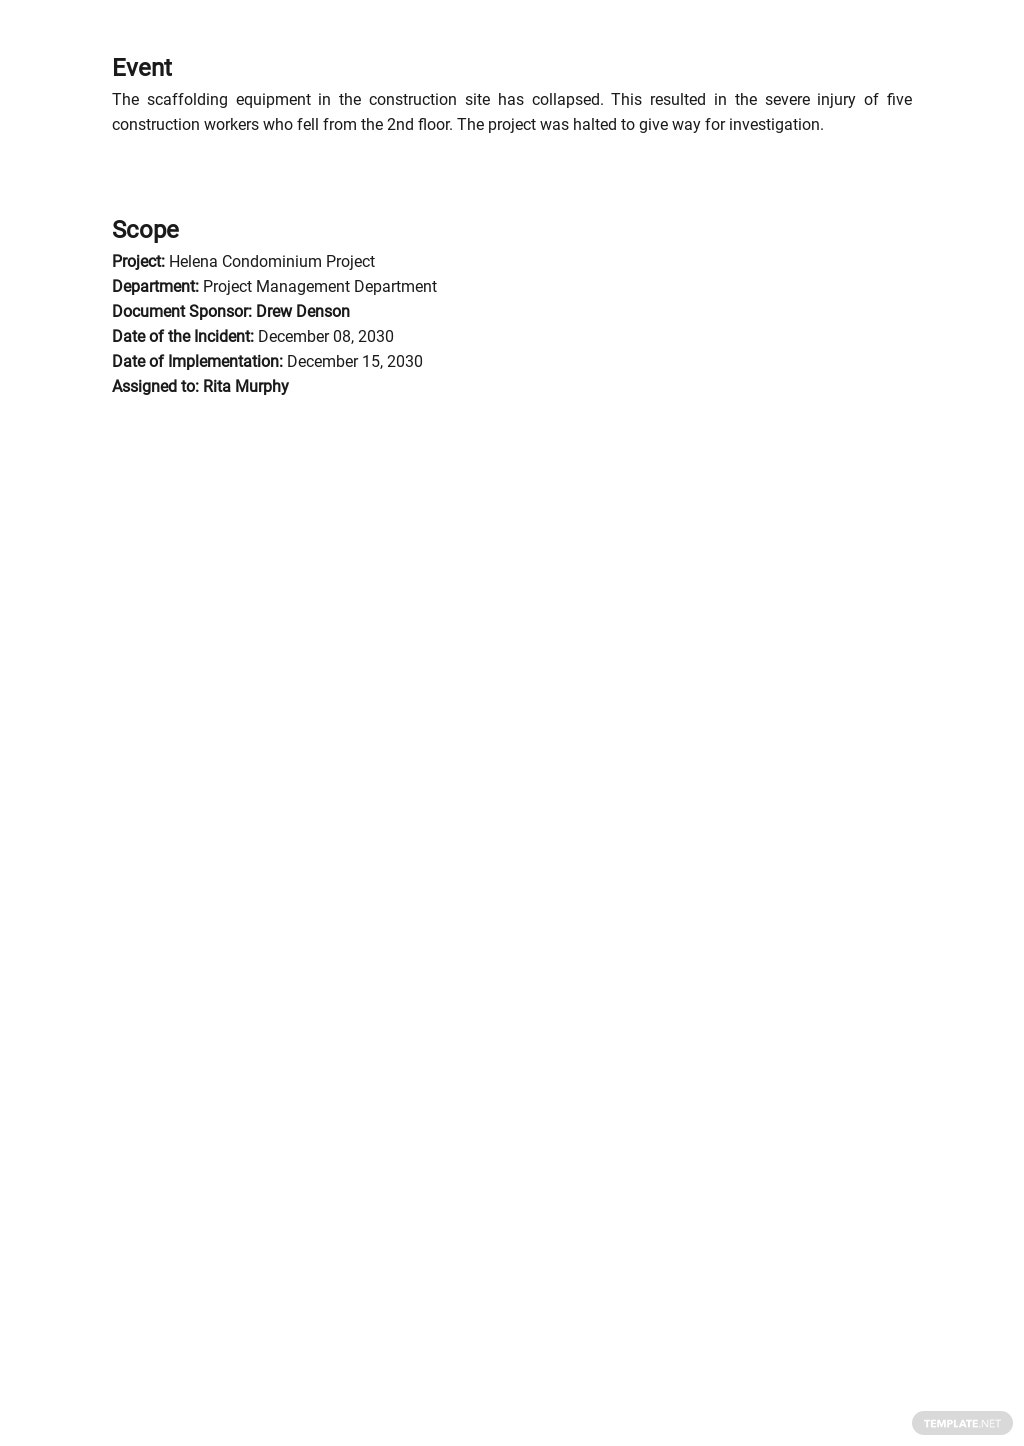 Accident Root Cause Analysis Template 1.jpe